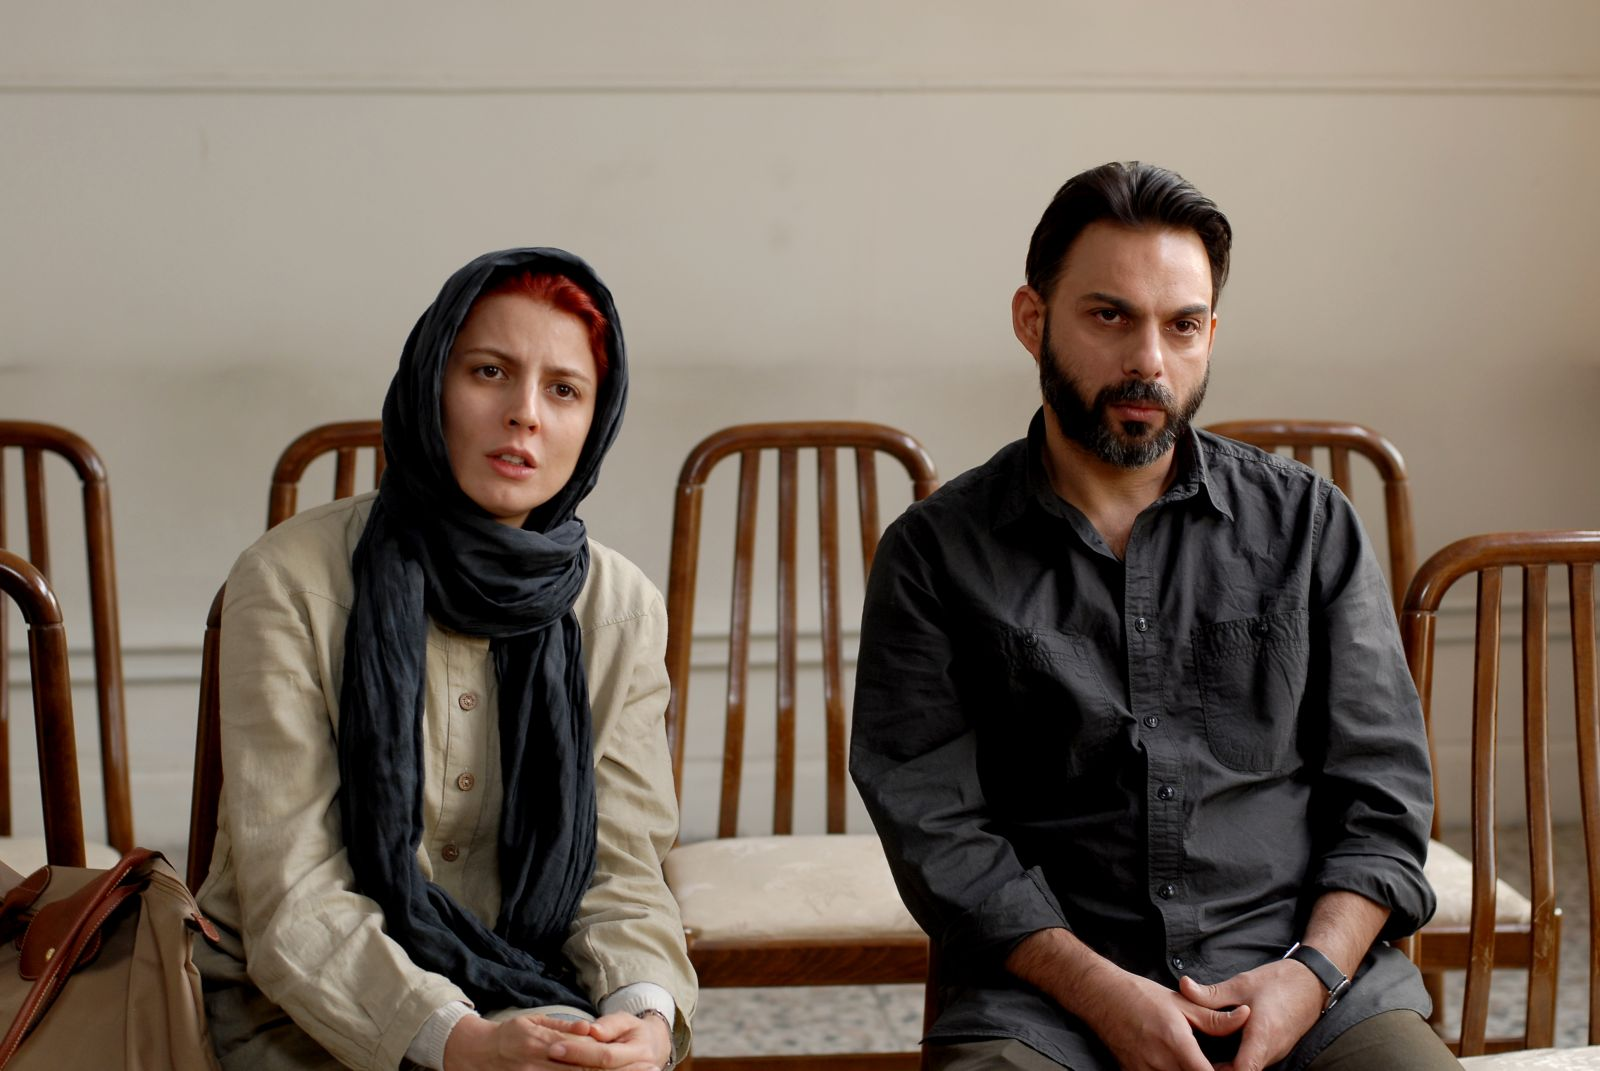 Opening scene of A Separation